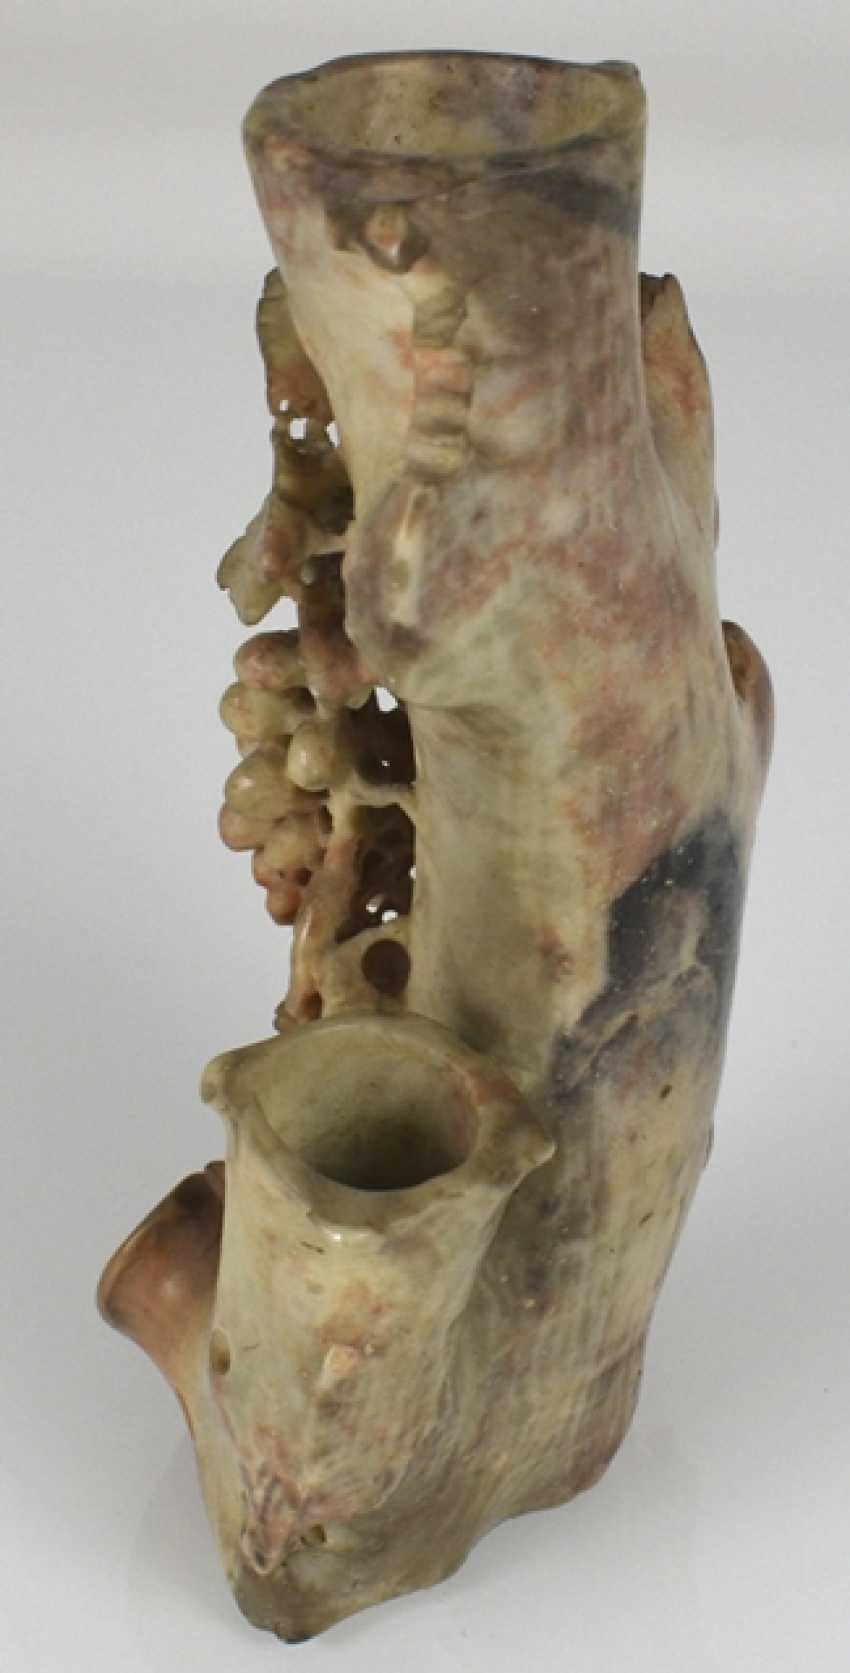 Brush cups are made from soapstone and vines in the Form of a tree trunk with wine - photo 2